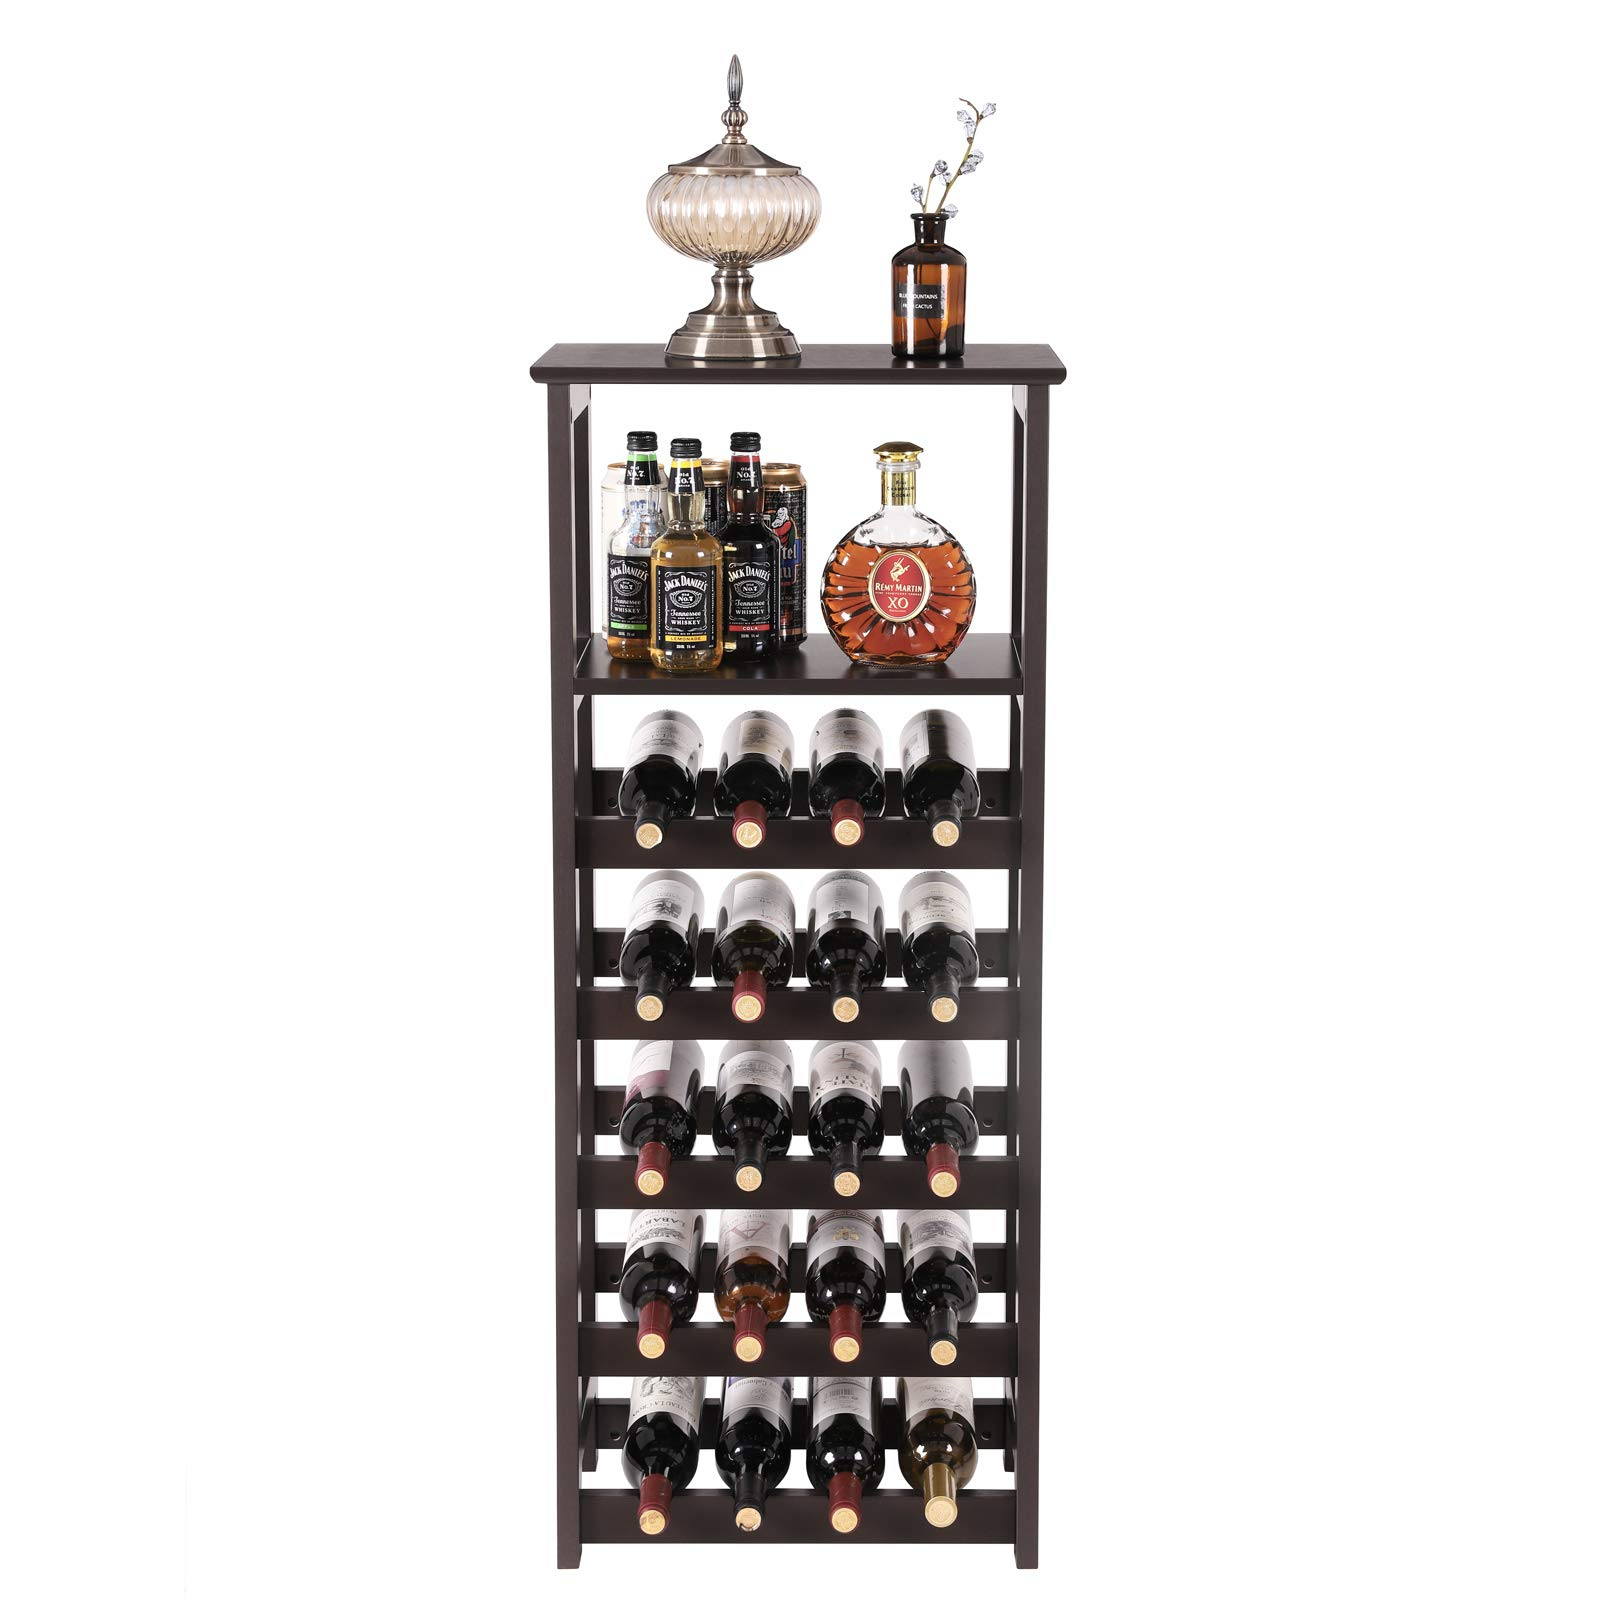 VASAGLE 20 Wooden Wine Rack, Free Standing Bottles Display Storage Shelf, with 2 Slatted Shelves,18.4''L × 10.4''W × 42.9''H, Espresso ULWR03BR by VASAGLE (Image #1)